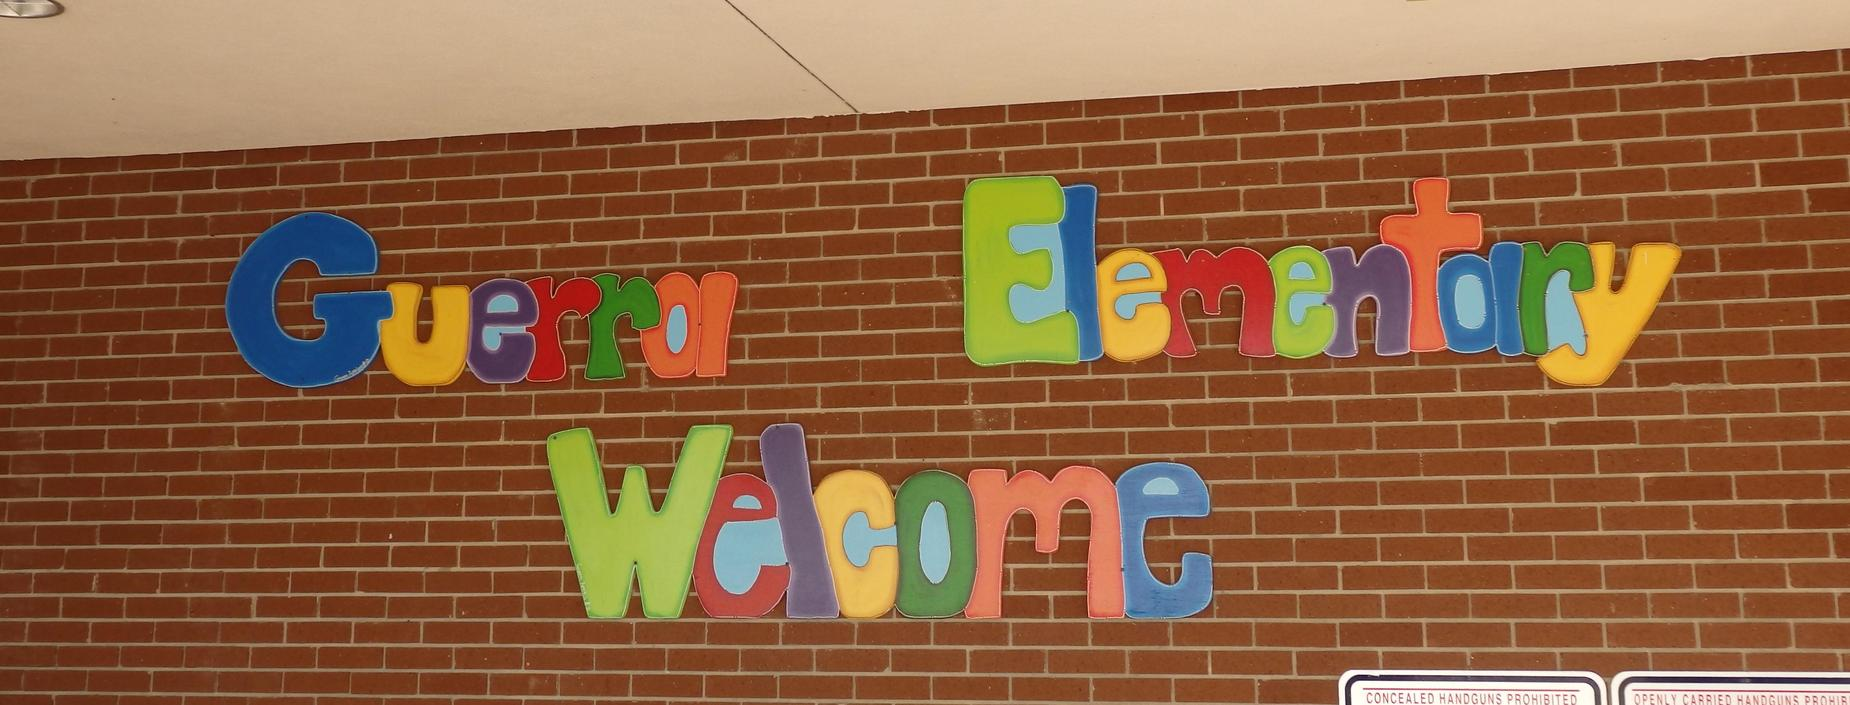 image of wall as you arrive to Guerra elementary entrance.